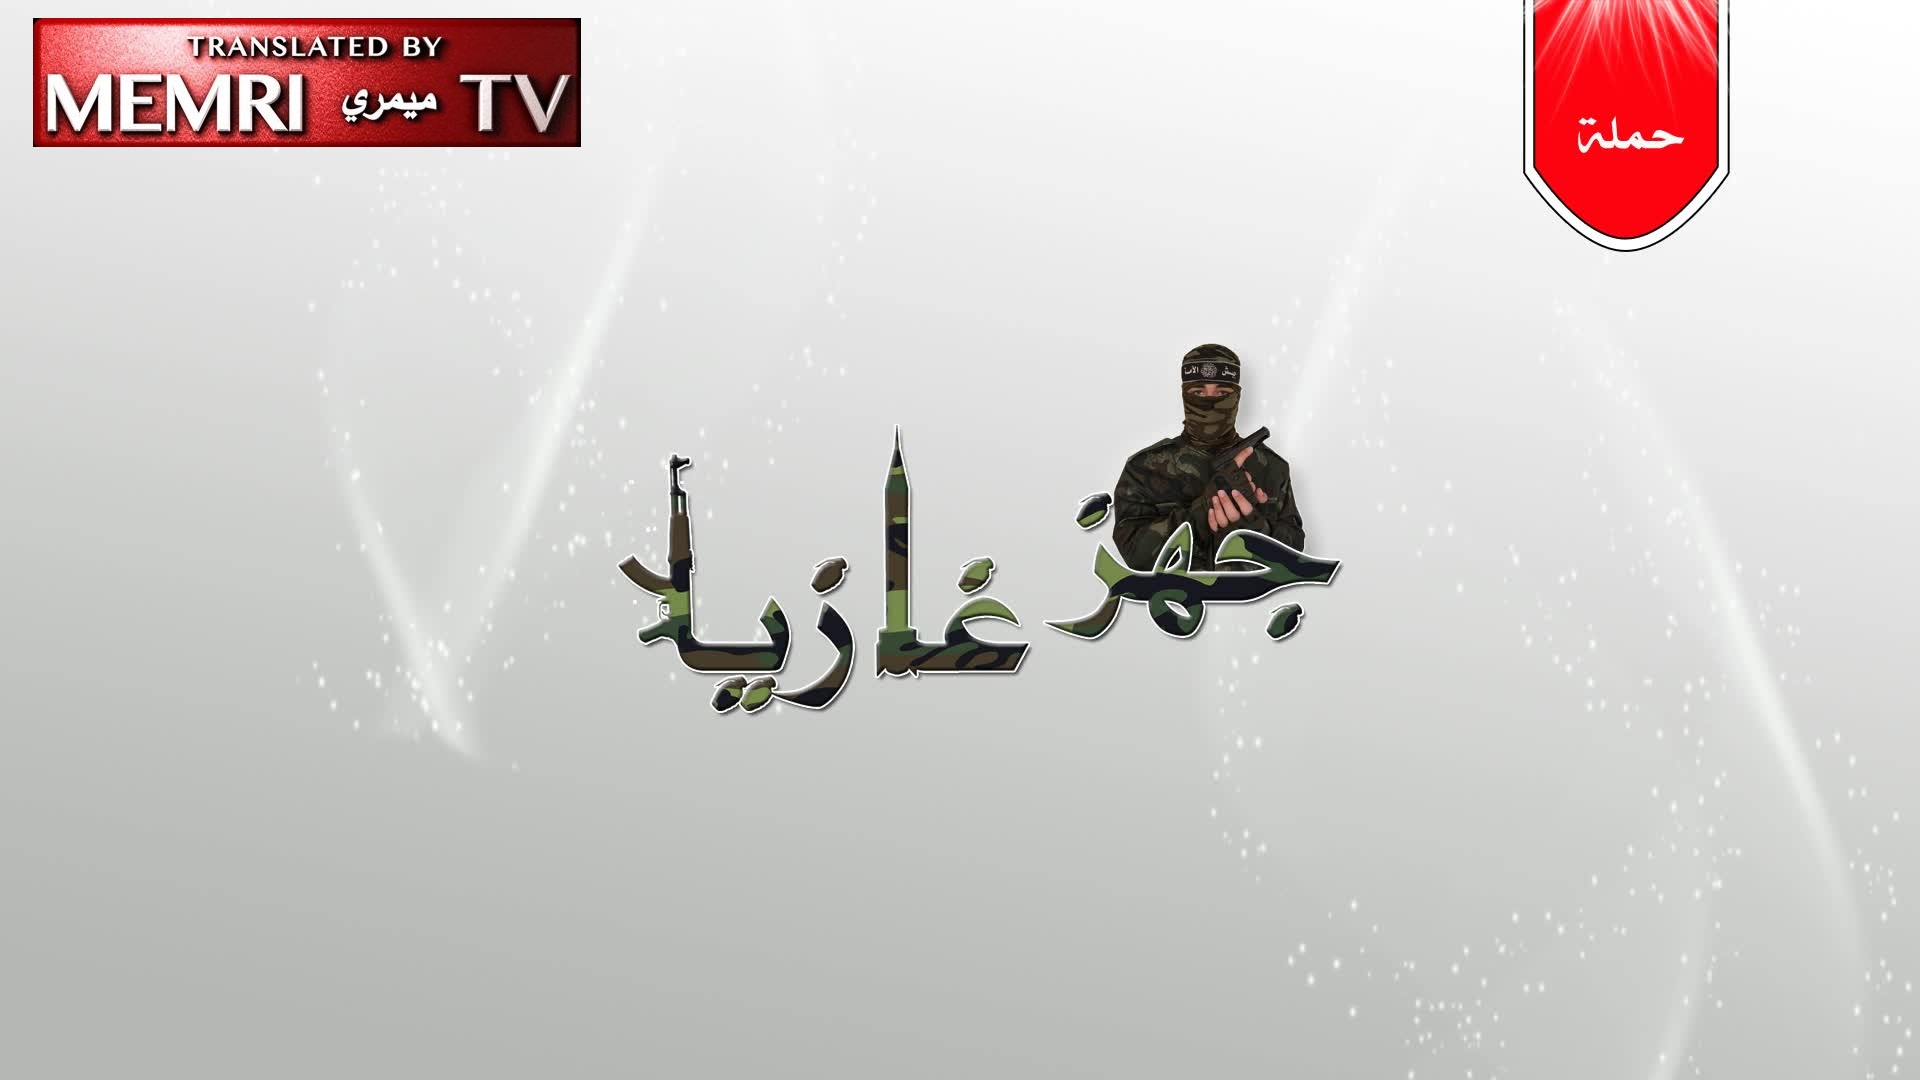 Gaza-Based Jihadi Group Posts 'Equip A Fighter' ‎Fundraising Video, Solicits Funds Using Bitcoin, Urges ‎Muslims To Donate To Fight 'Usurper Jews'‎